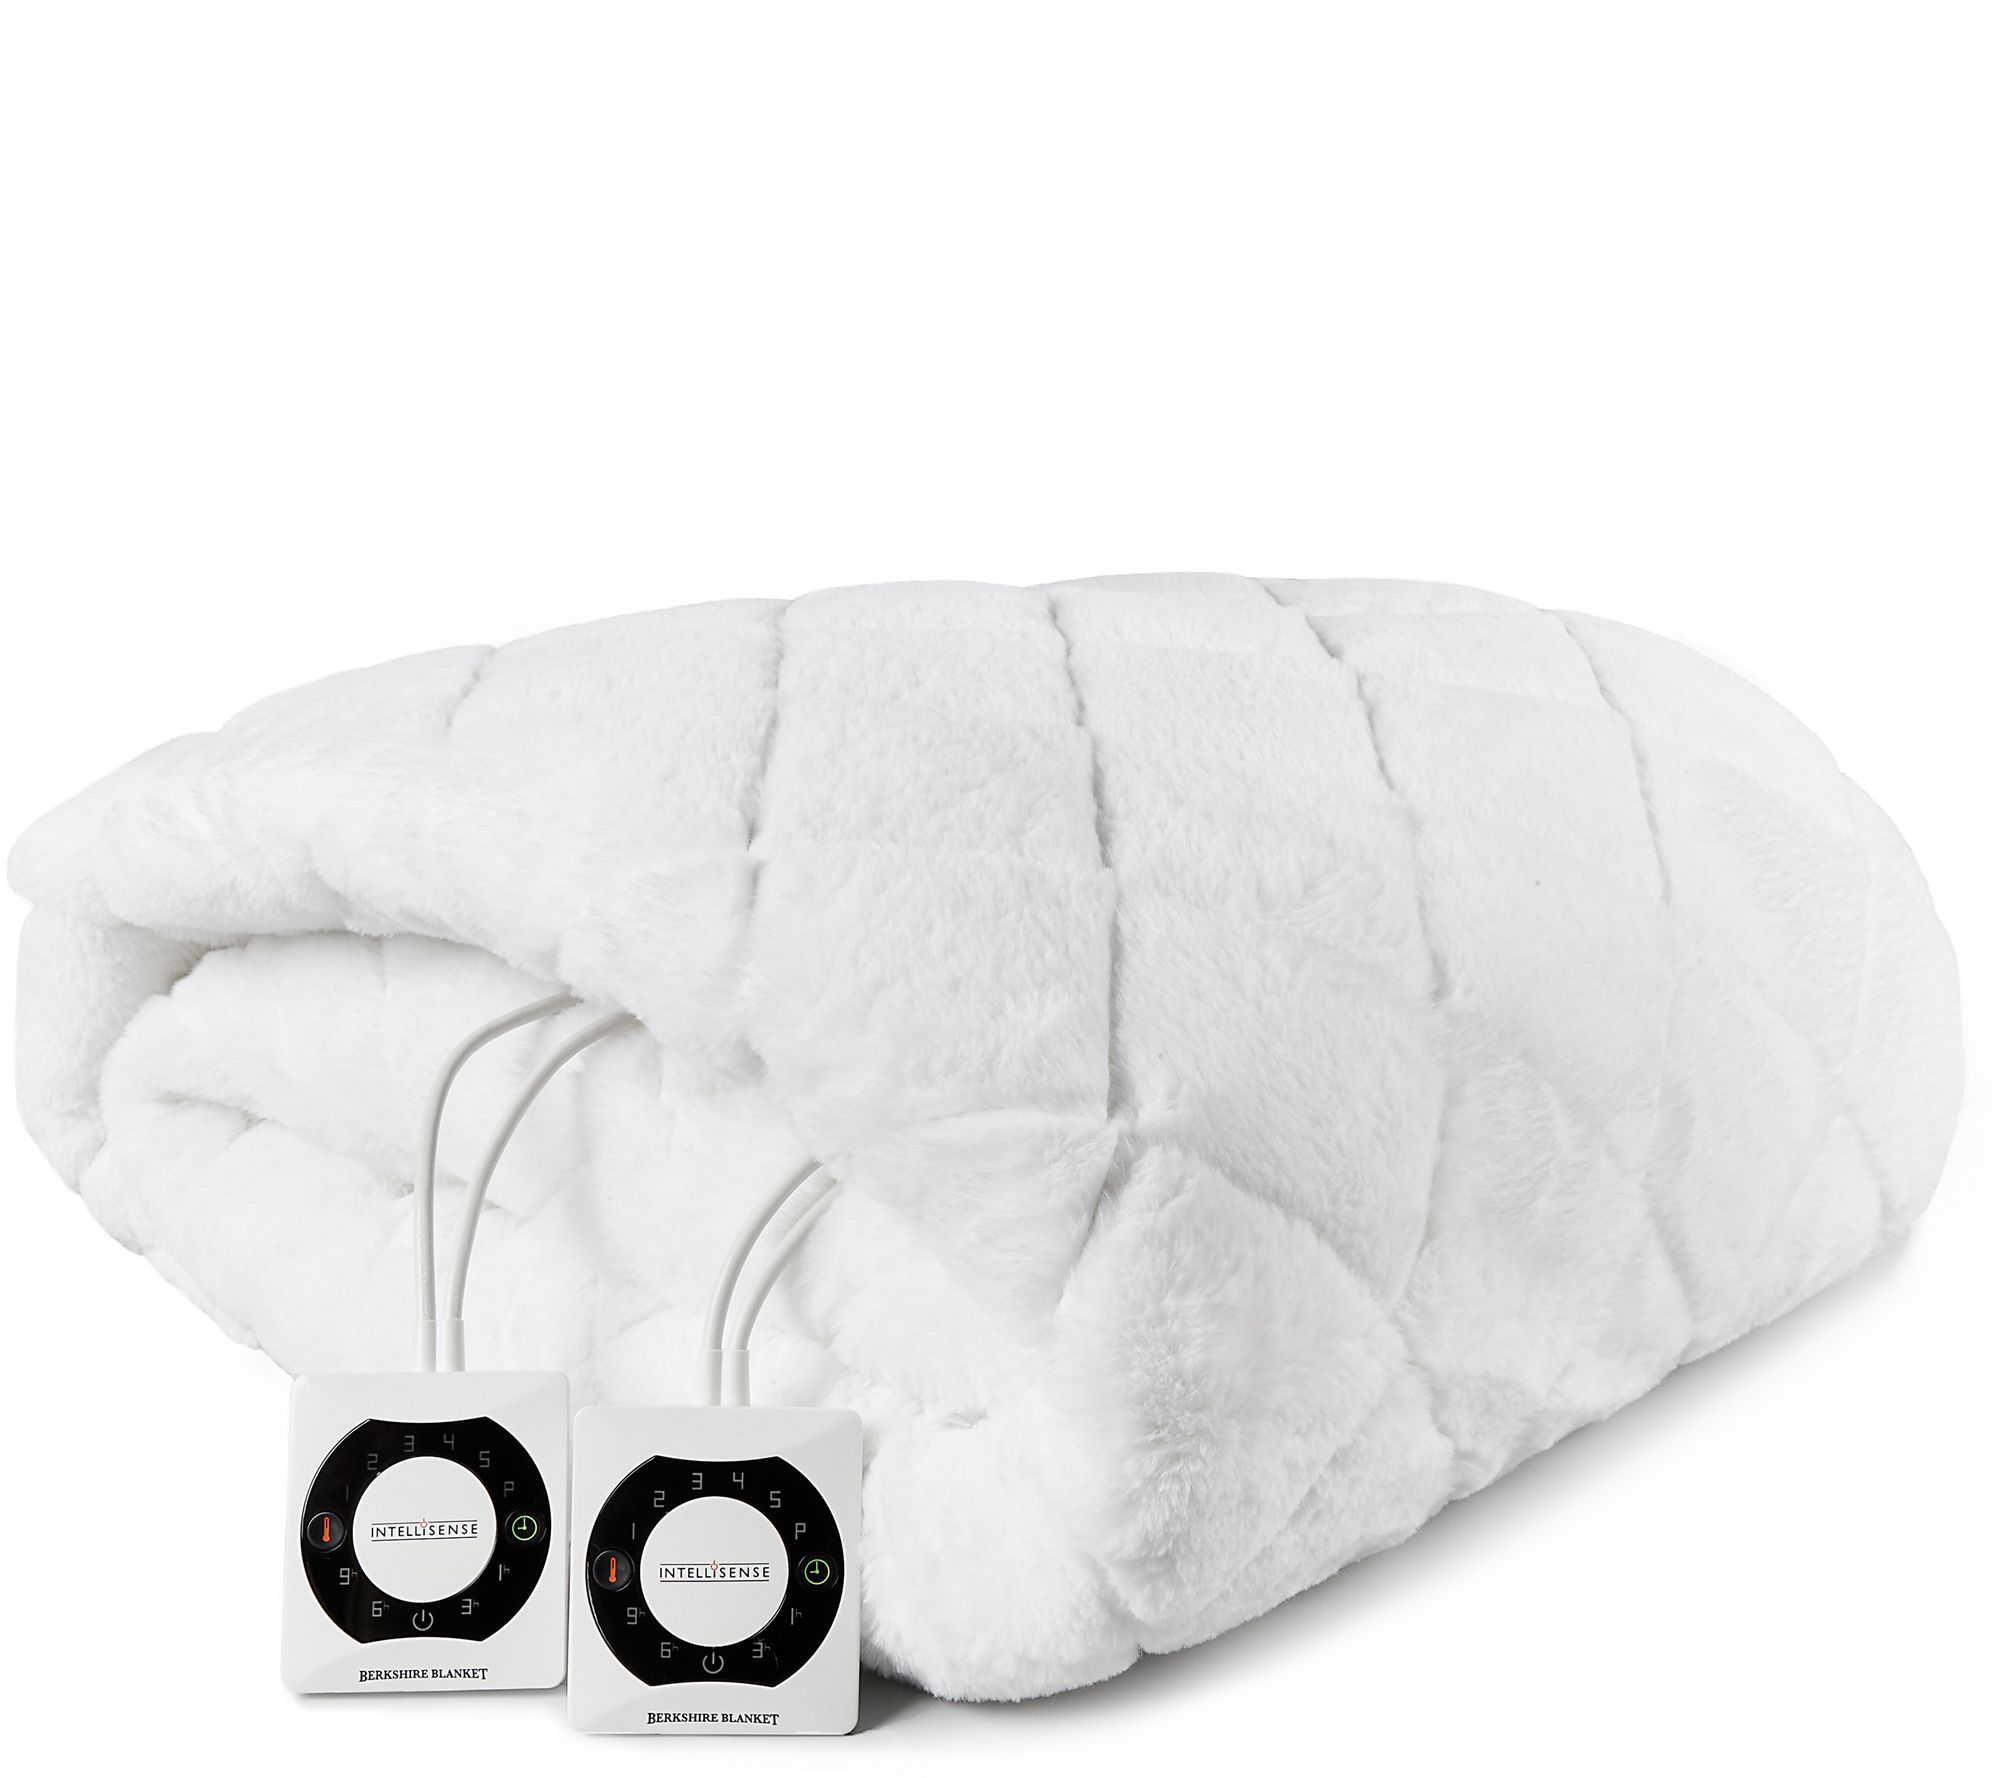 Mattress Pads & Toppers Covers Protectors More — QVC